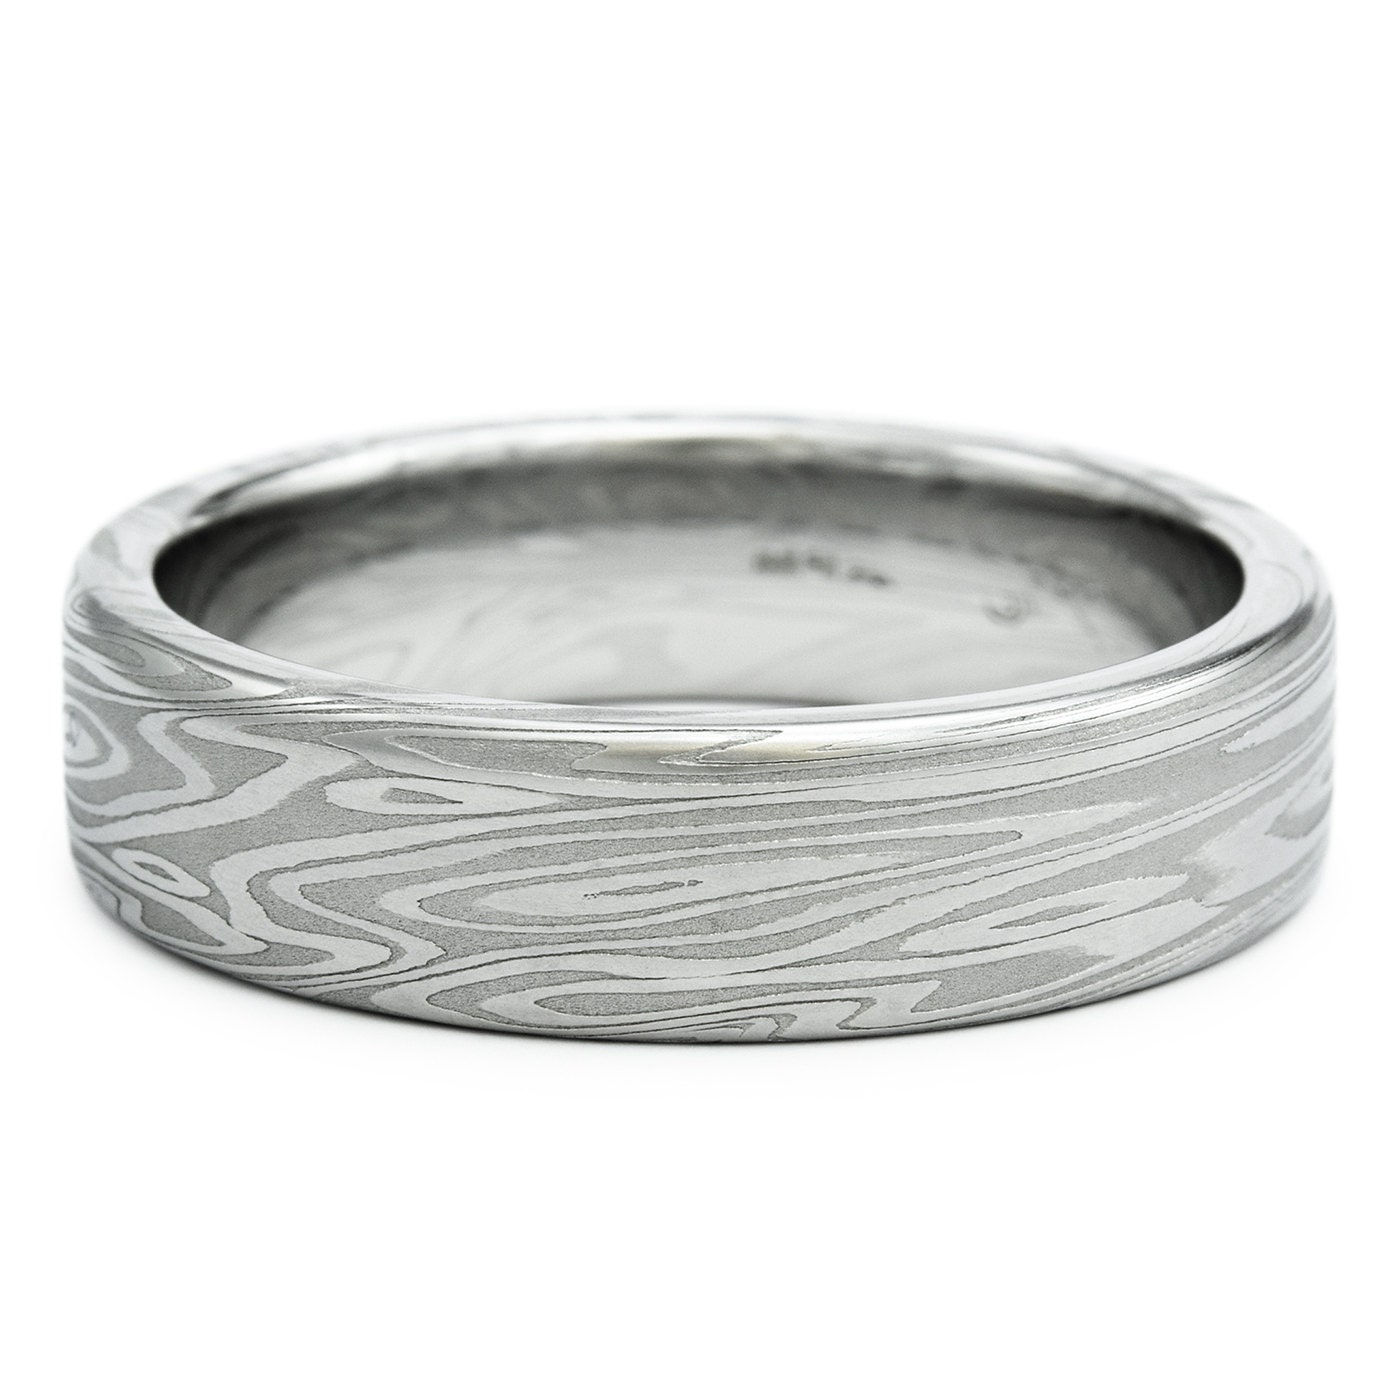 Ready to Pop the Question? Do it With a Damascus Steel ... |Damascus Steel Rings For Women